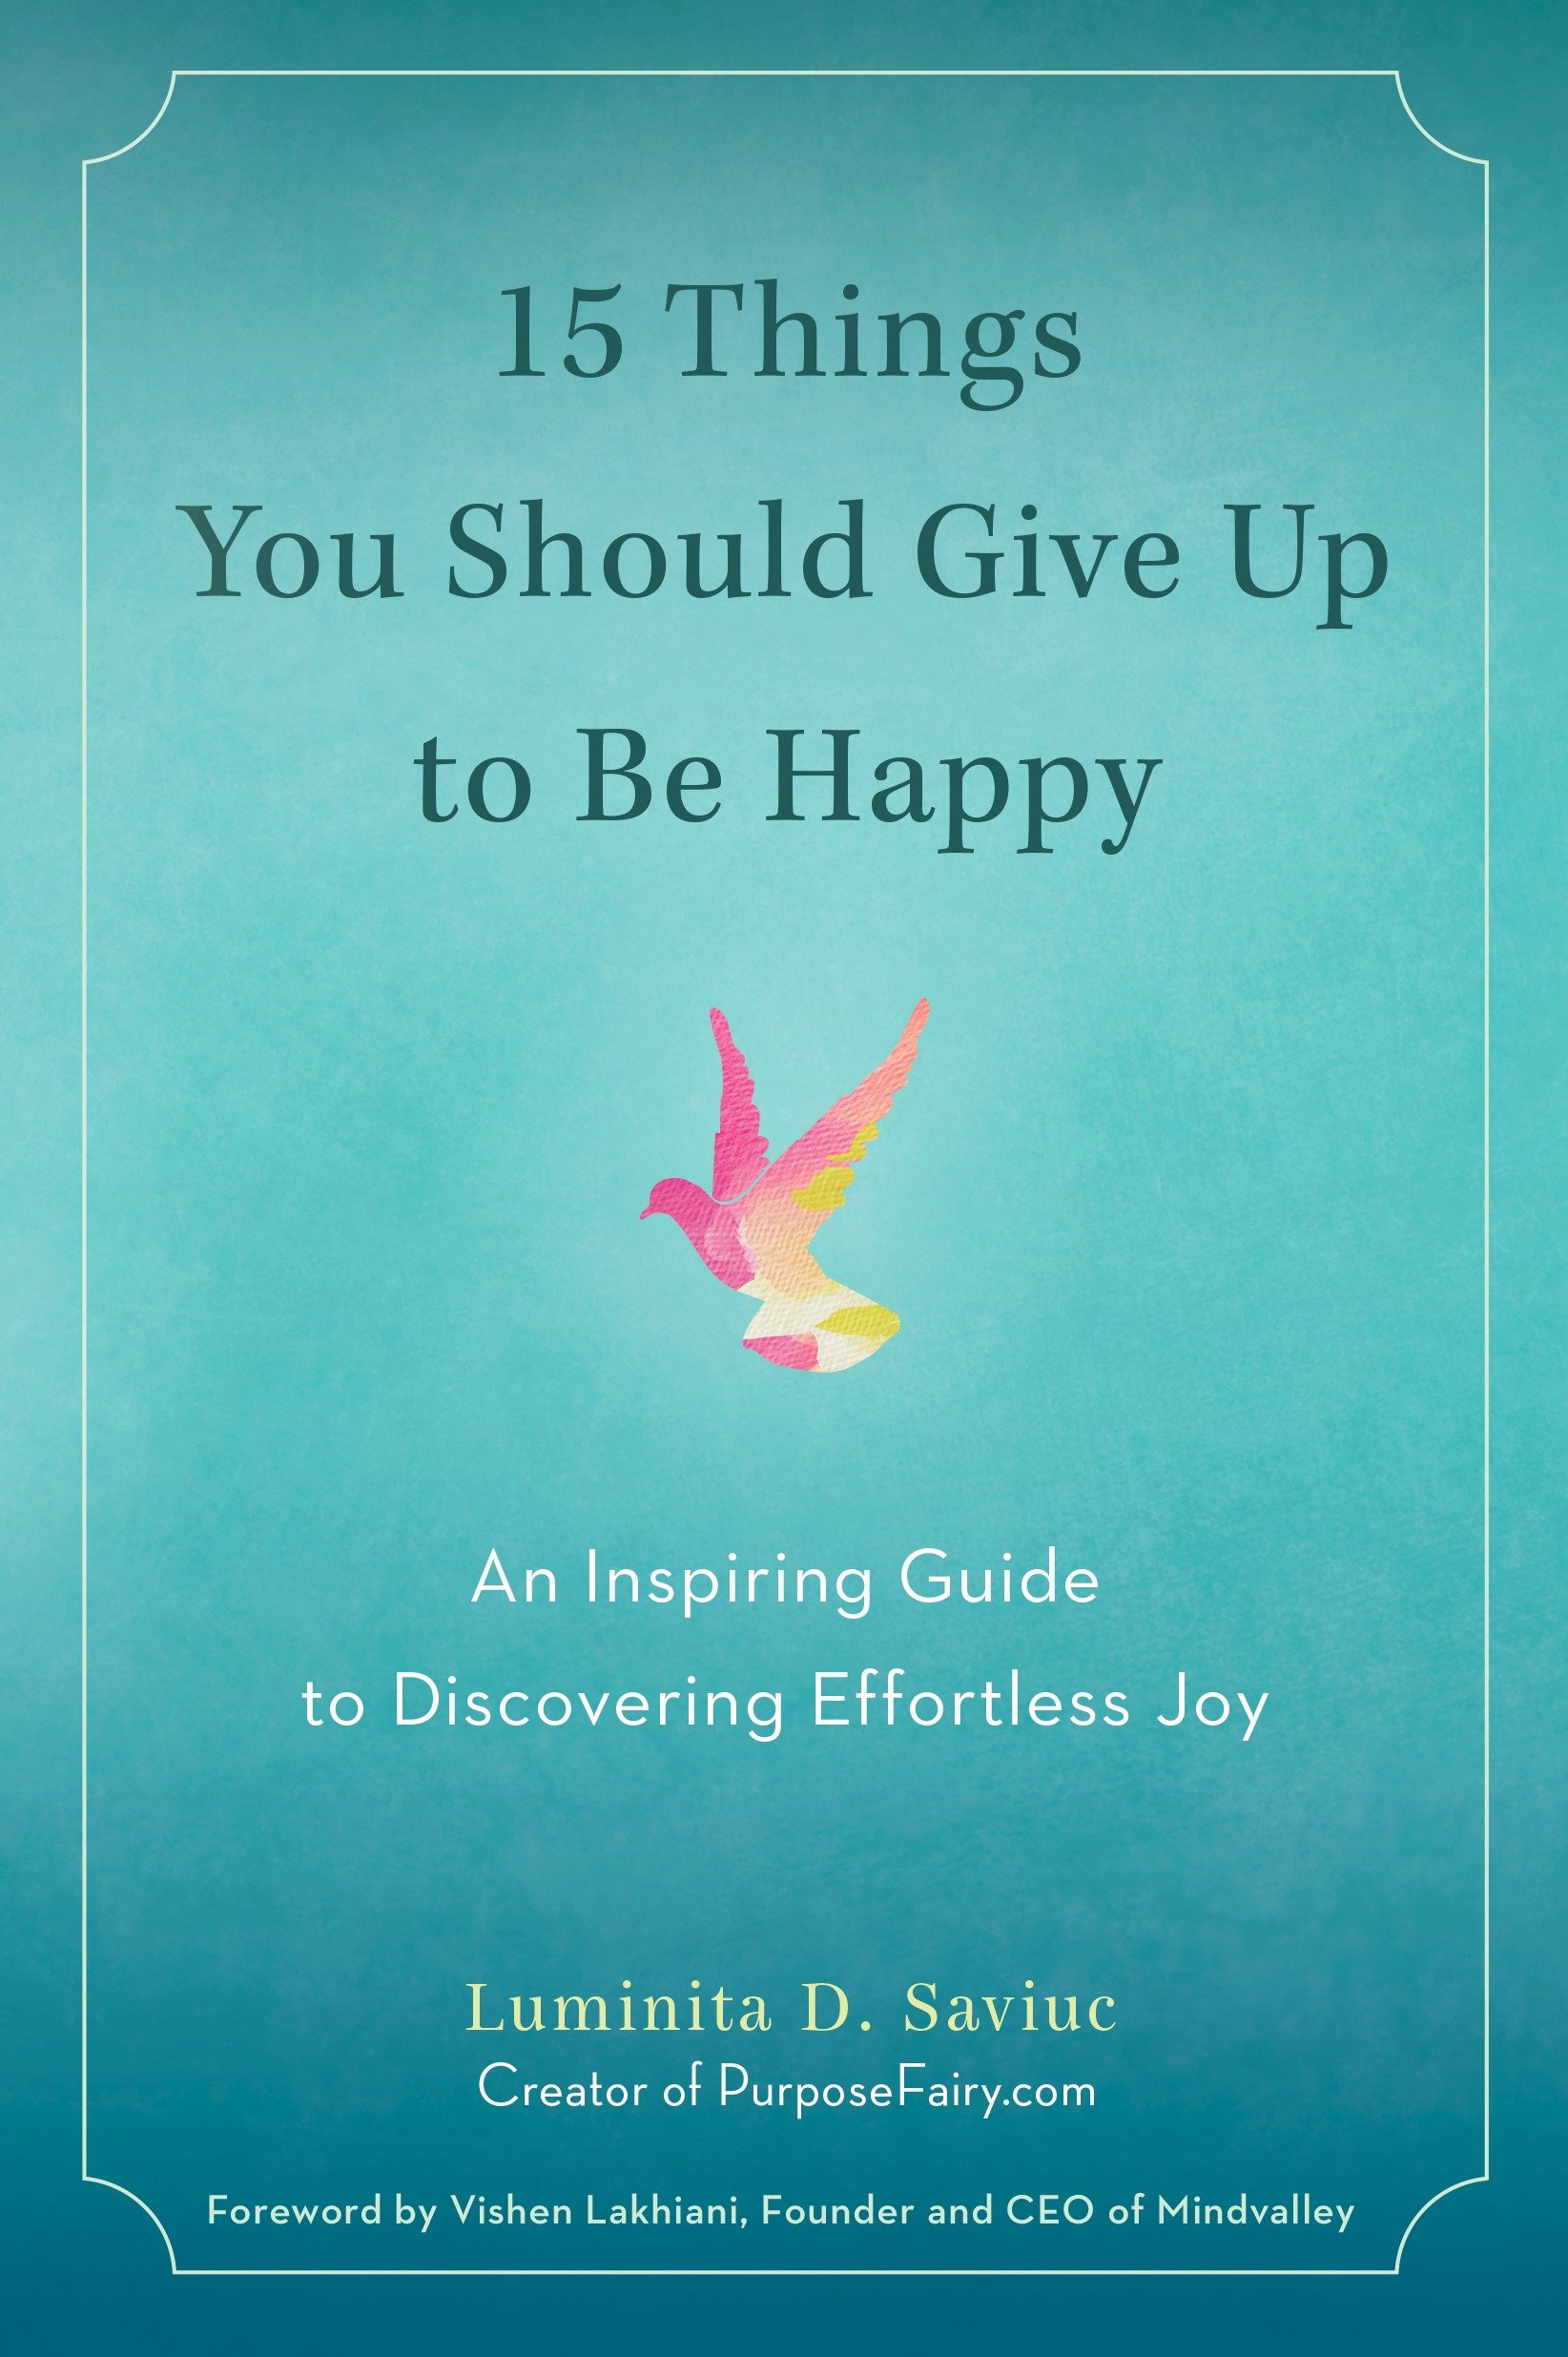 15 Things You Should Give Up to Be Happy An Inspiring Guide to Discovering Effortless Joy